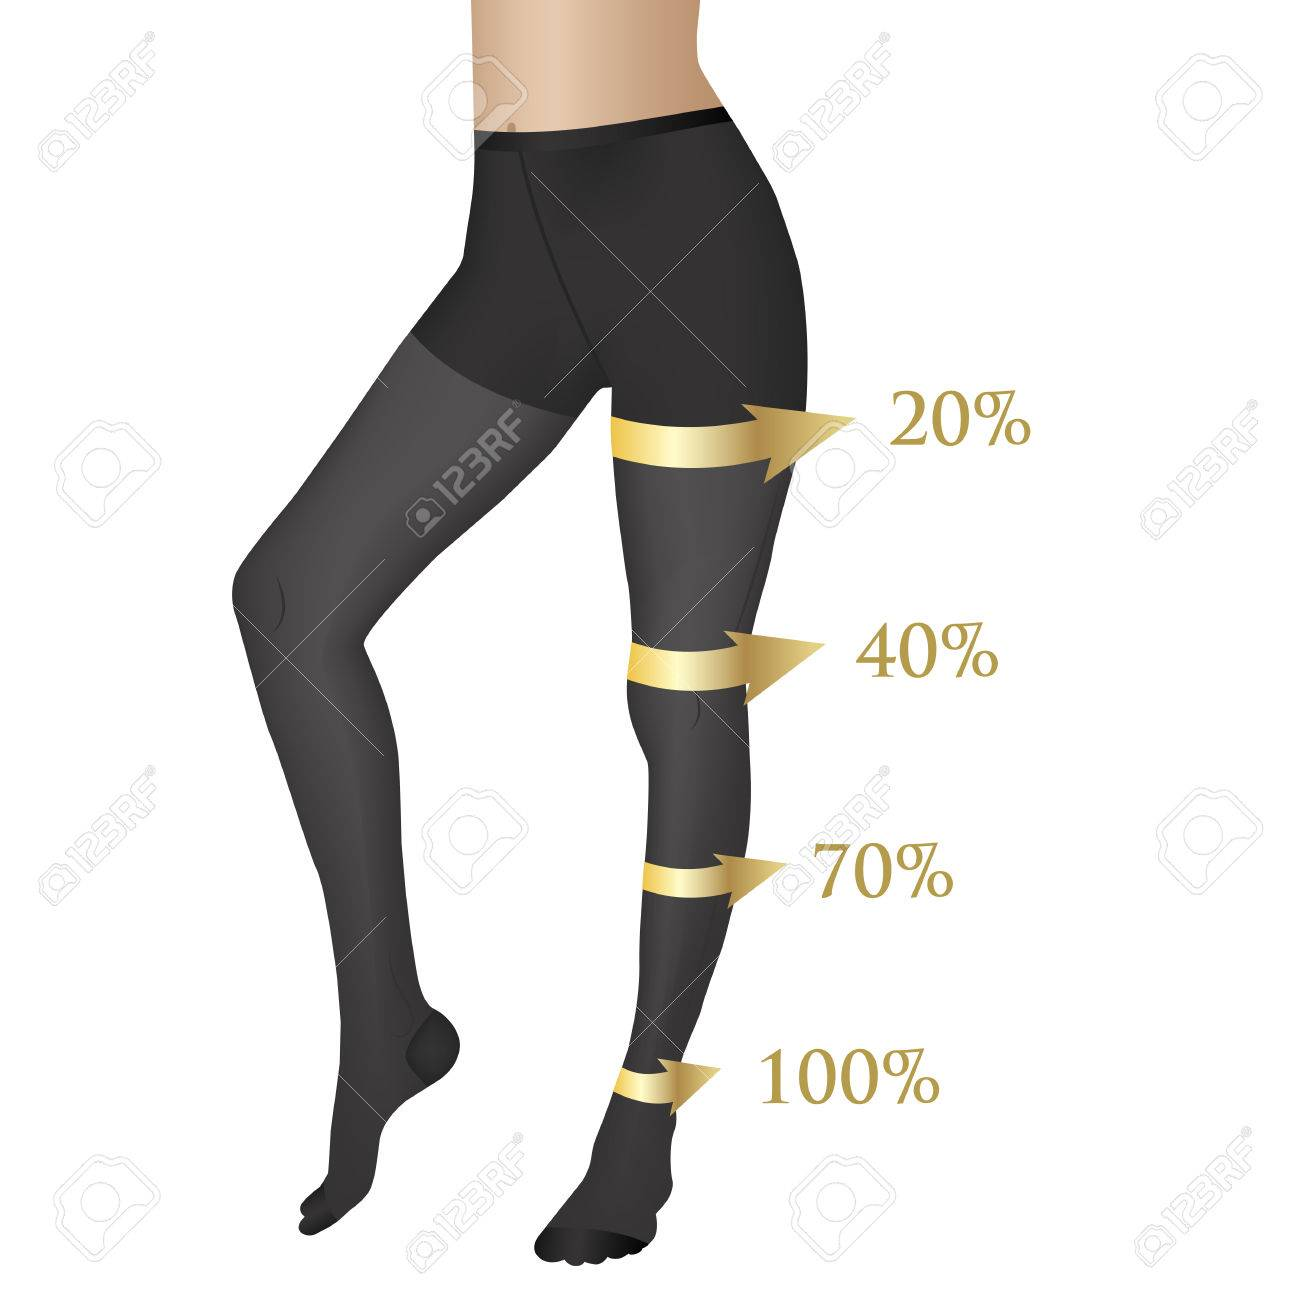 31d6df7f23 medical compression tights. Slender and beautiful female legs. Varicose  veins. Stock Vector -